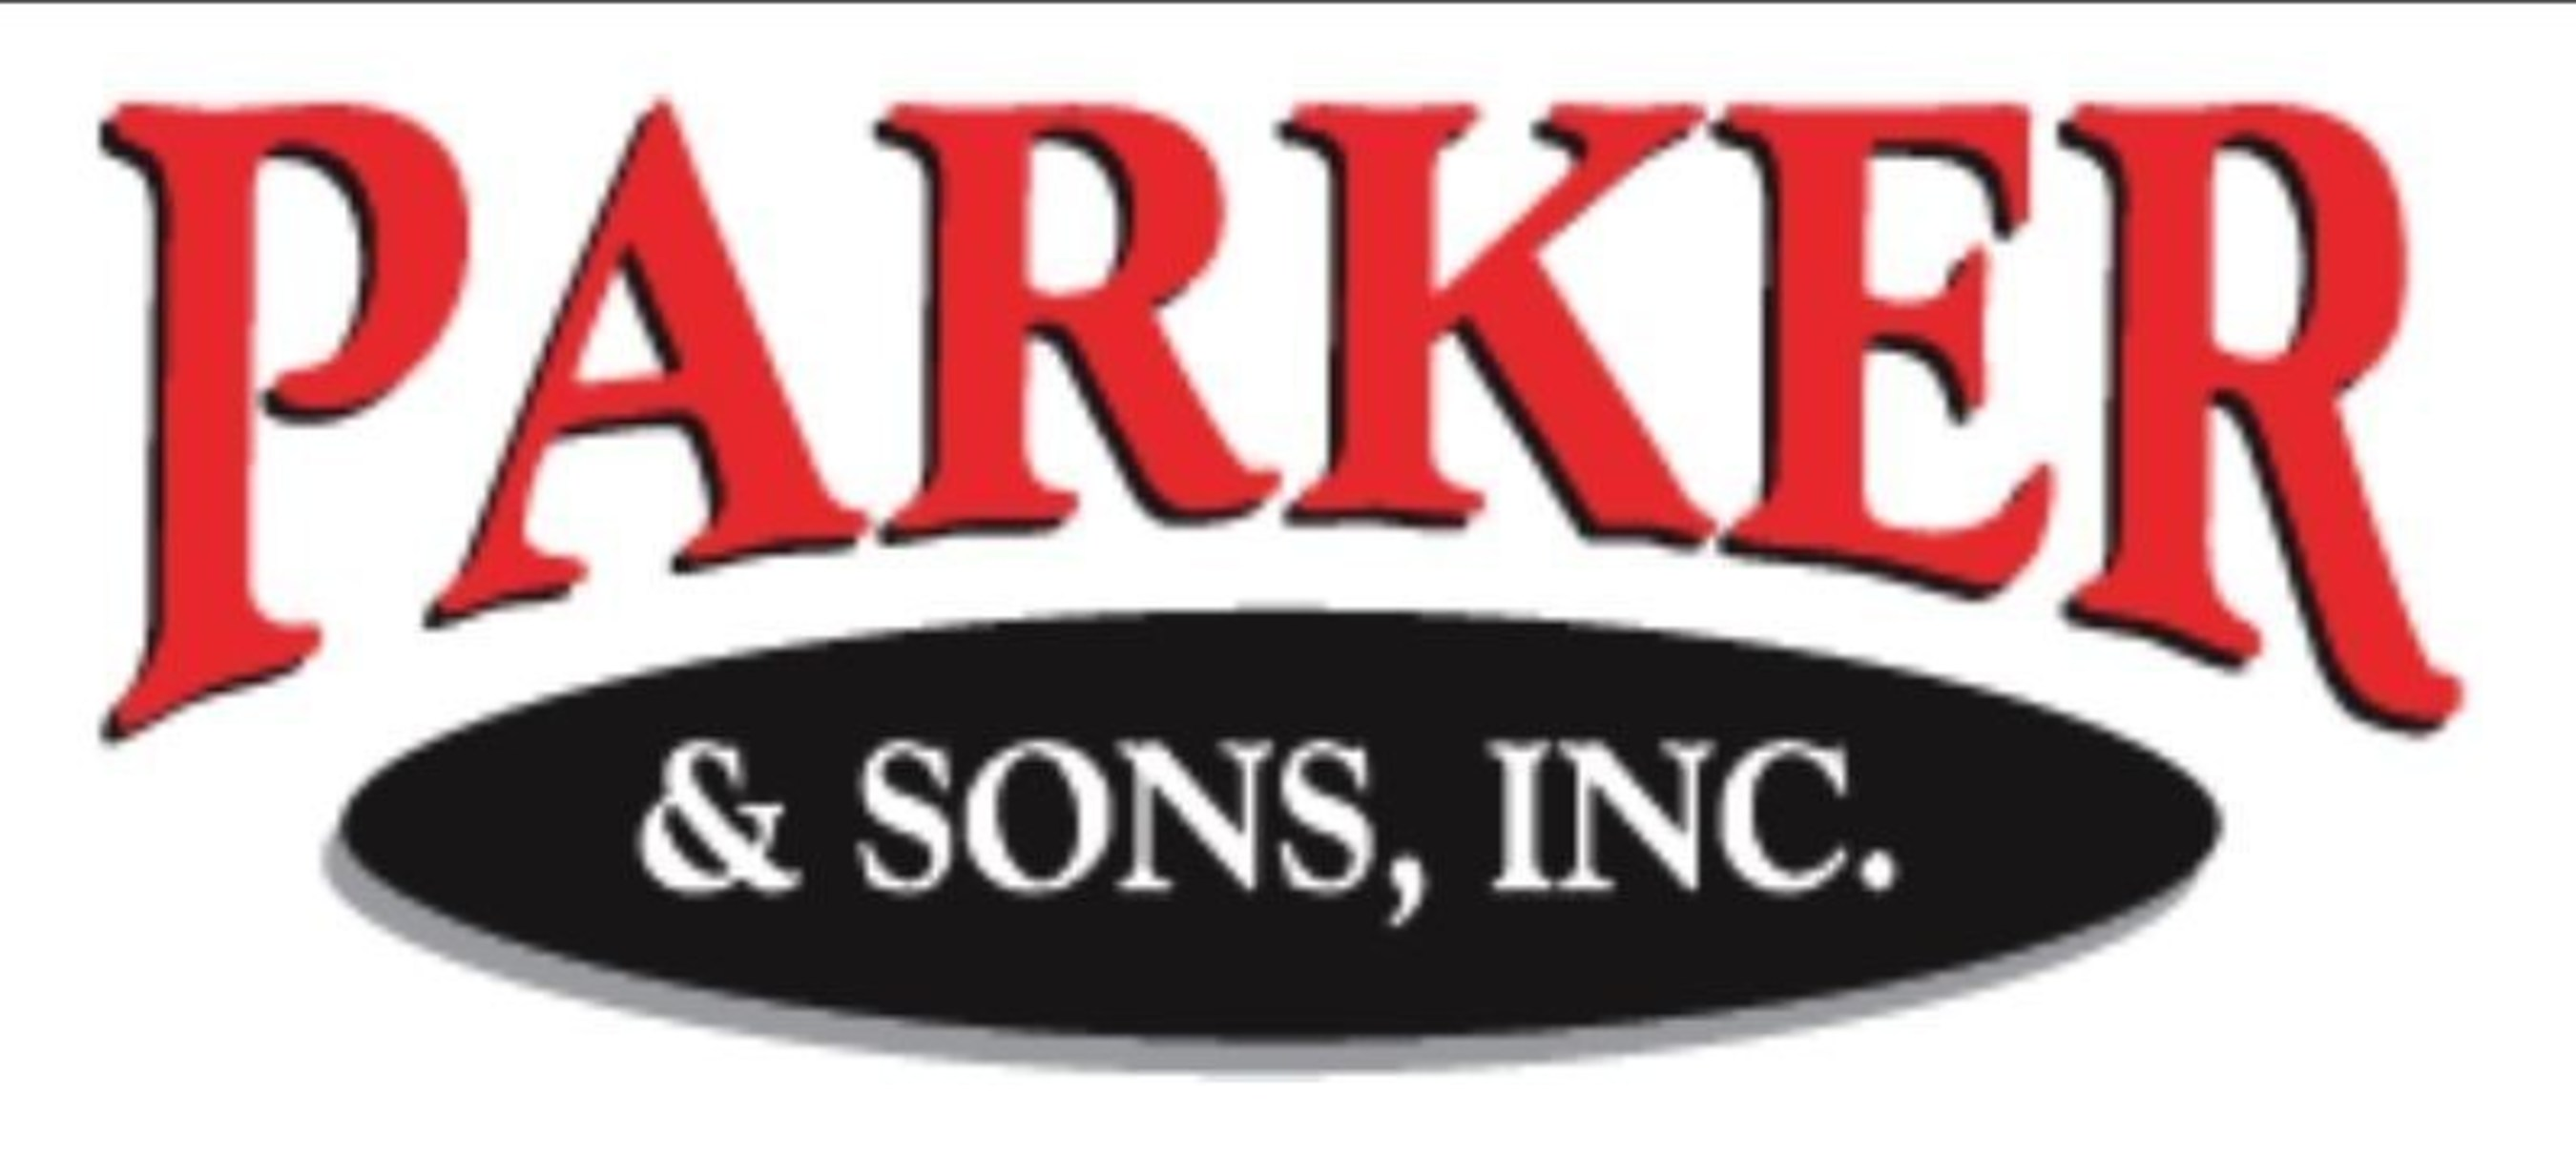 Parker & Sons Donates to the Special Olympics